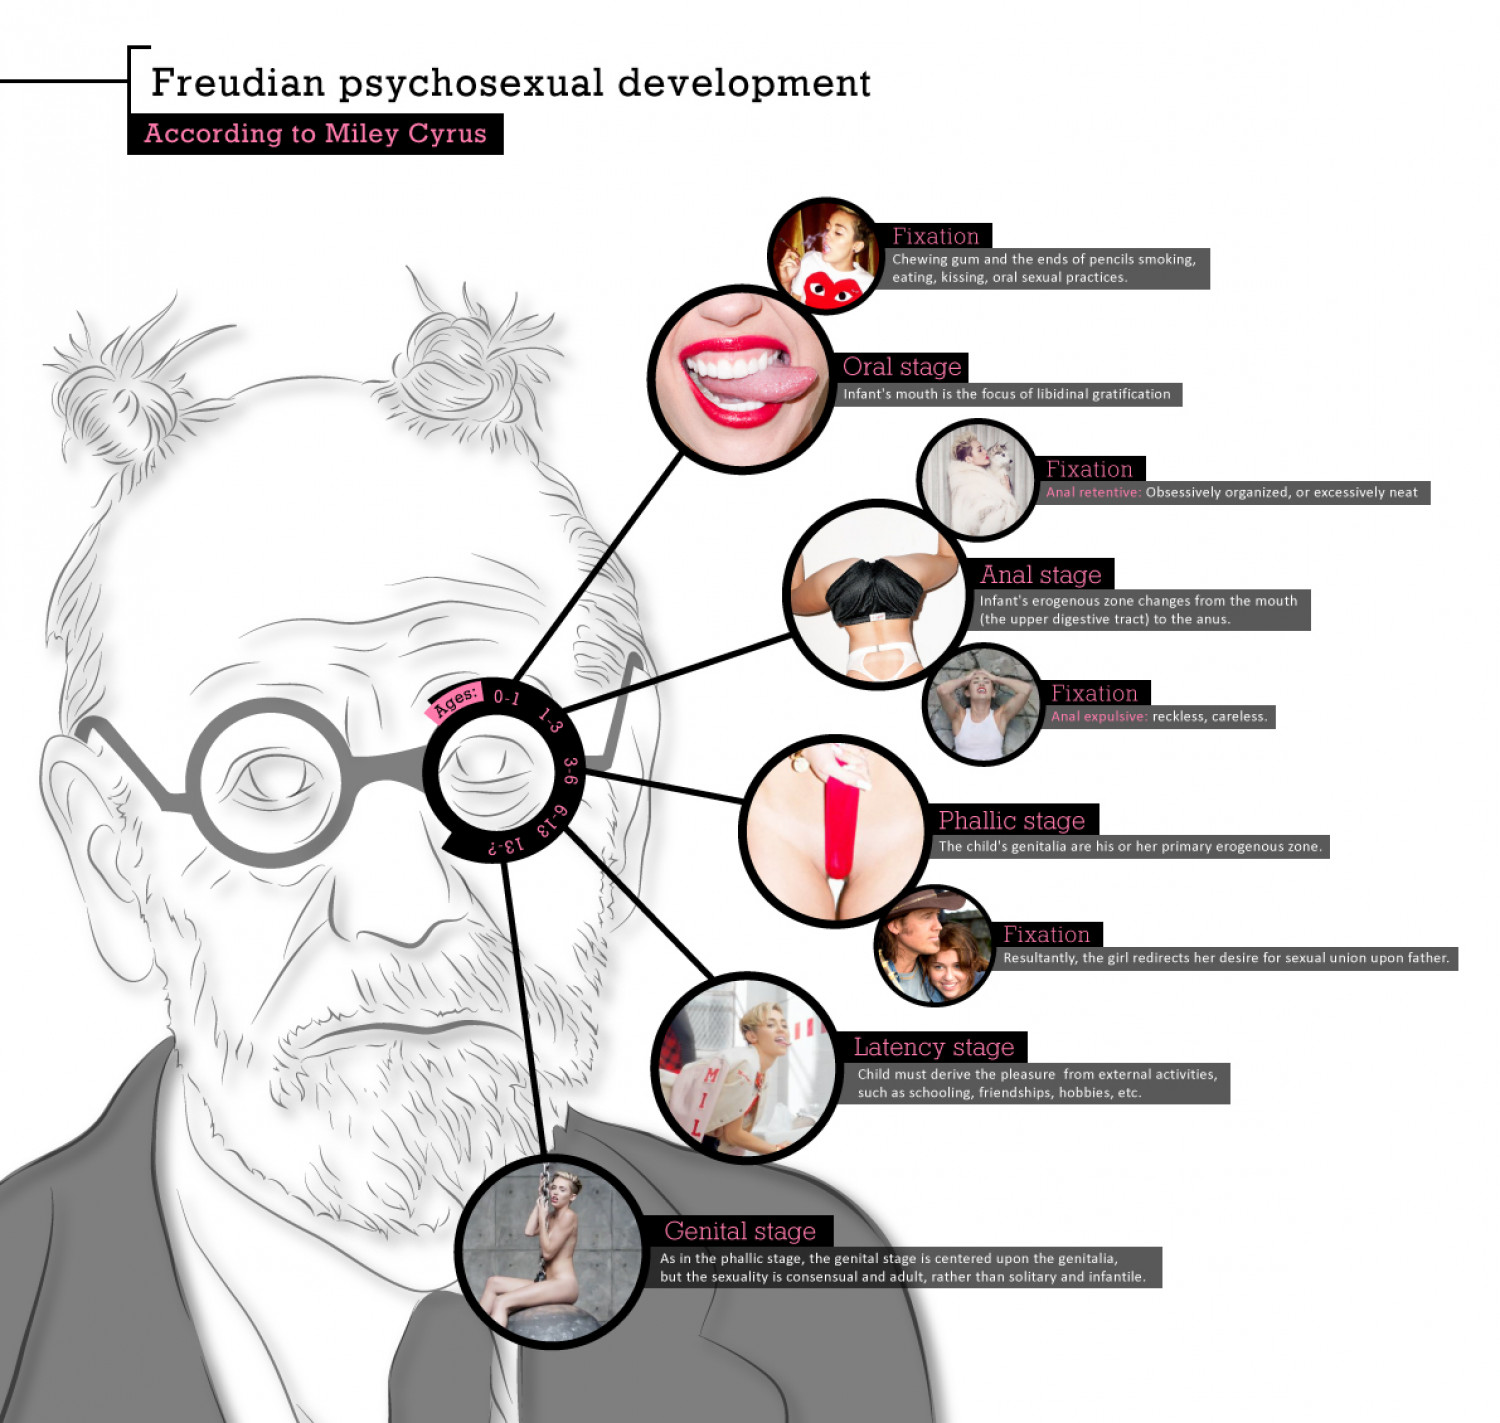 freuds theory of psychosexual development and miley cyrus A psychoanalysis of miley cyrus that a disrupted development of the psyche could and focusing on it with her mouth freud would argue that cyrus has.